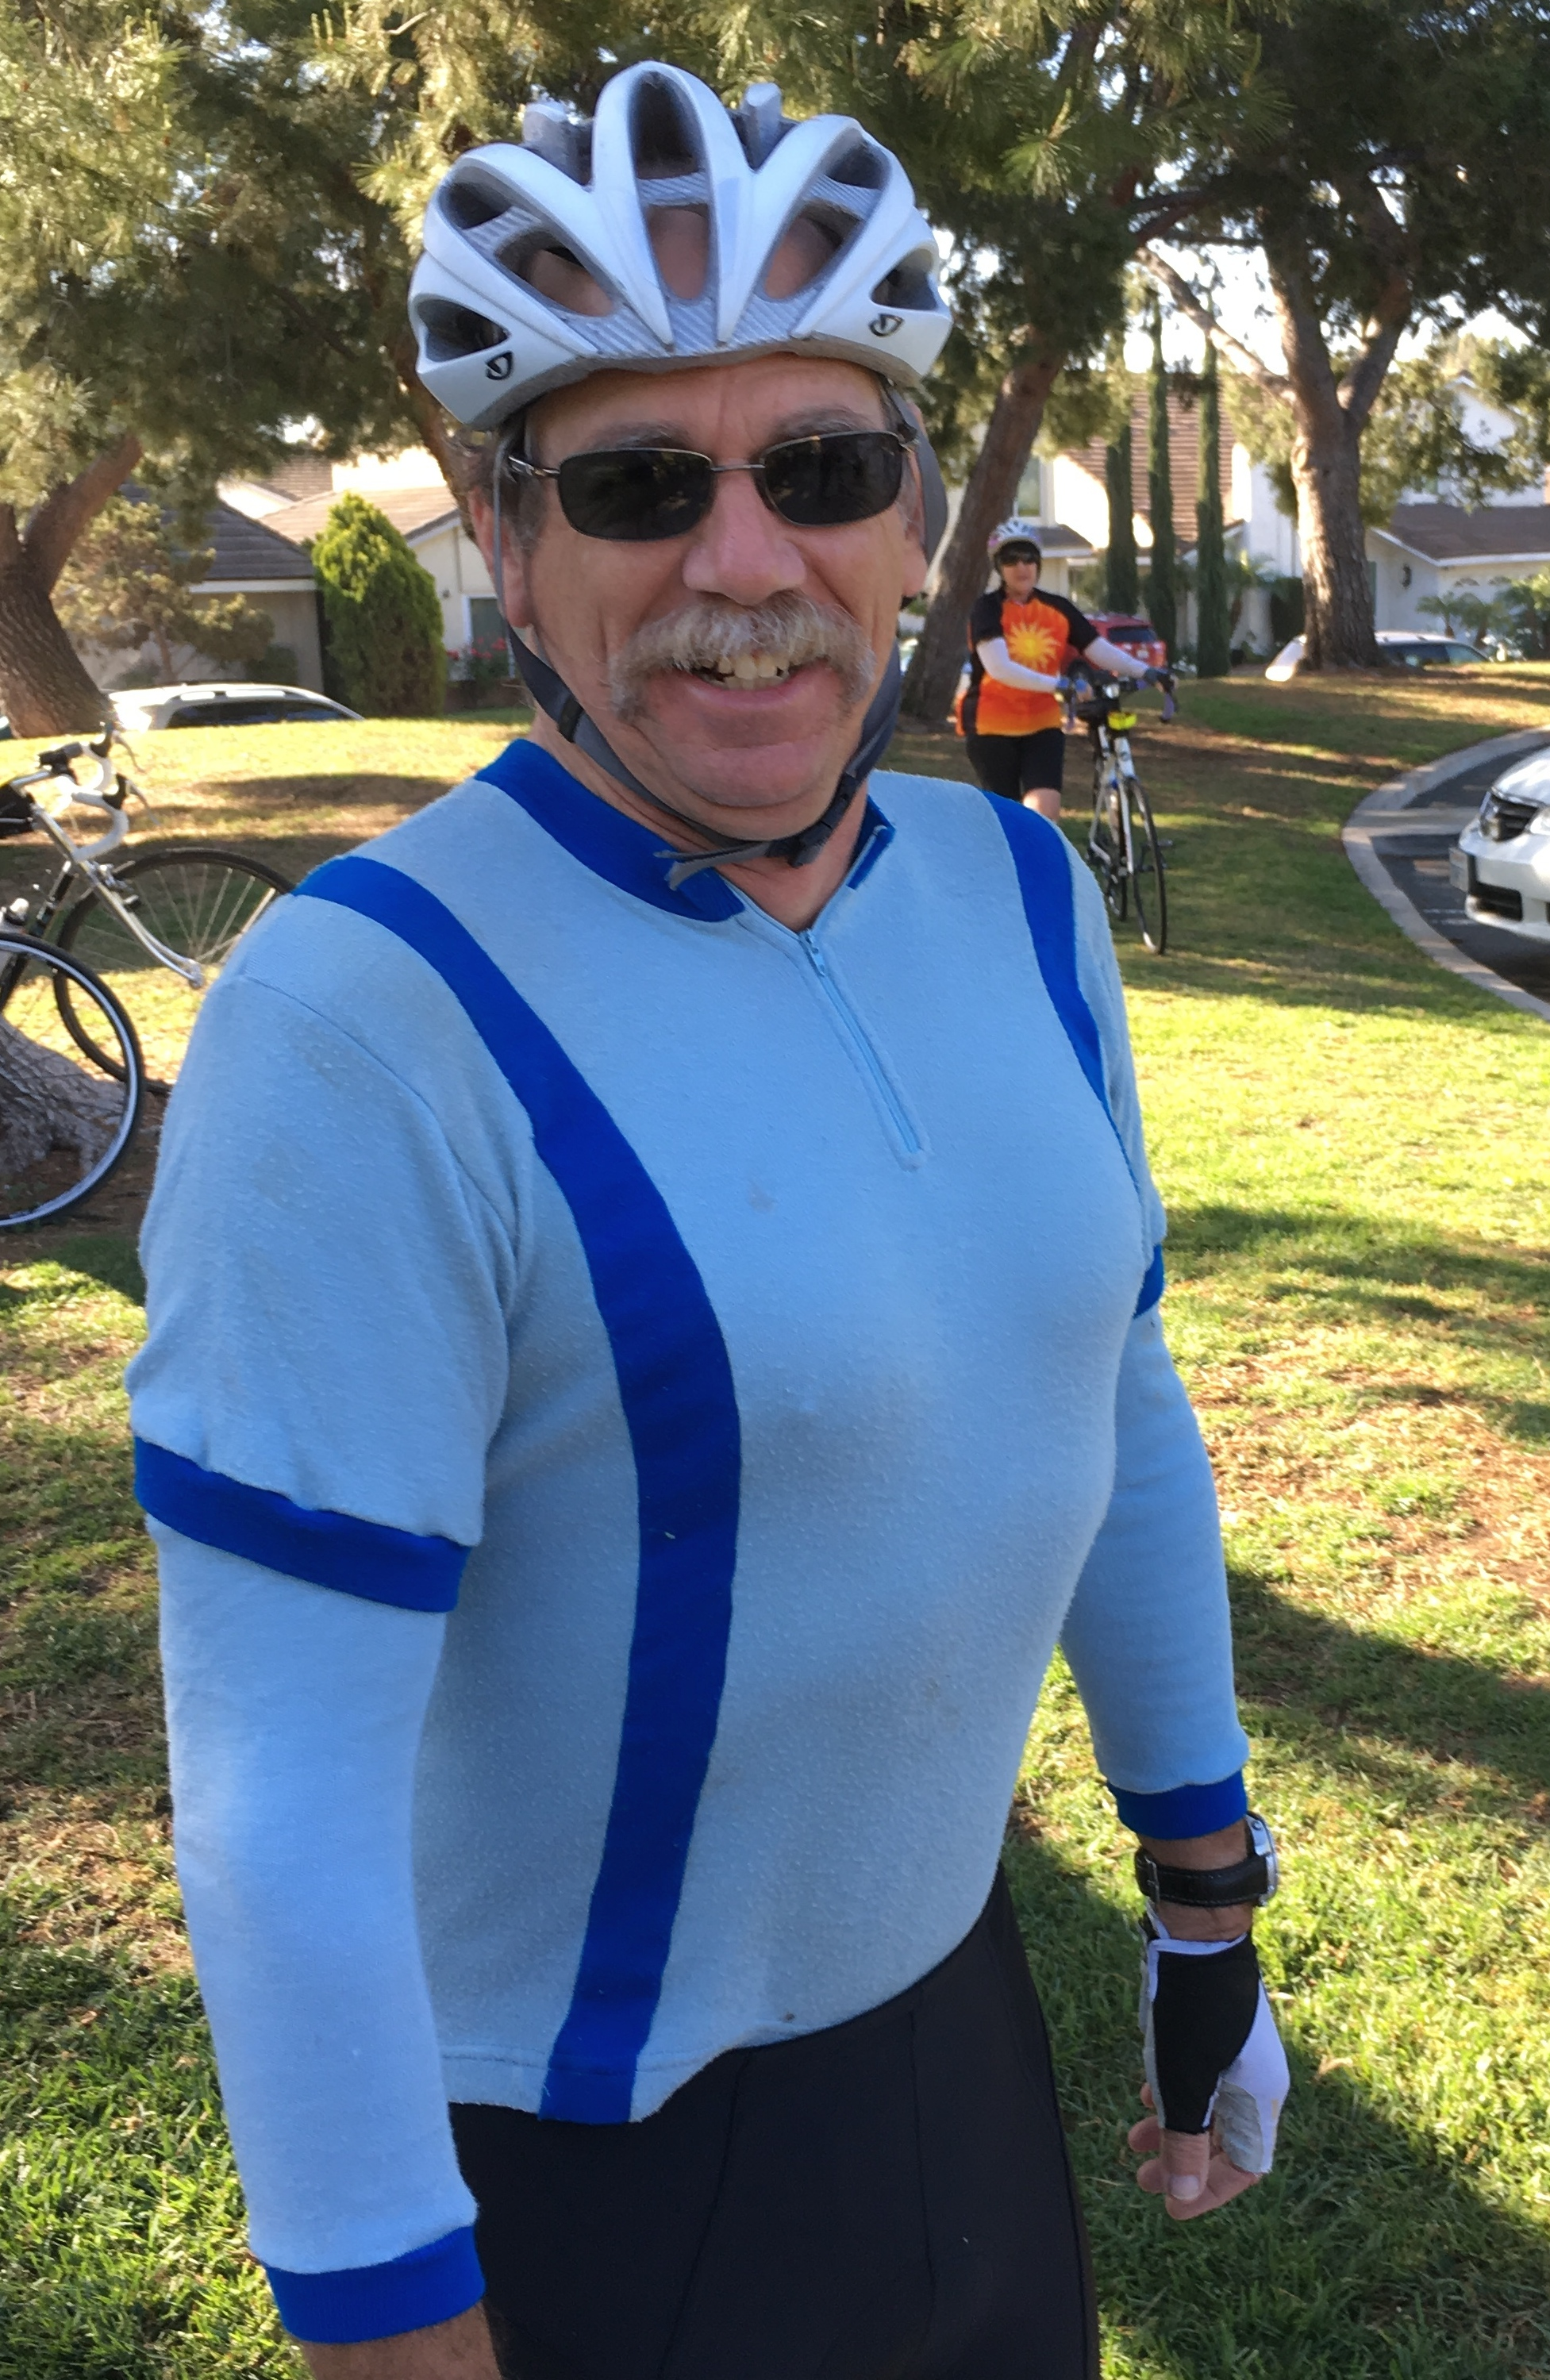 Bruce sporting his original 1983 BCI Jersey for Jersey Day - still fit after 33 years...